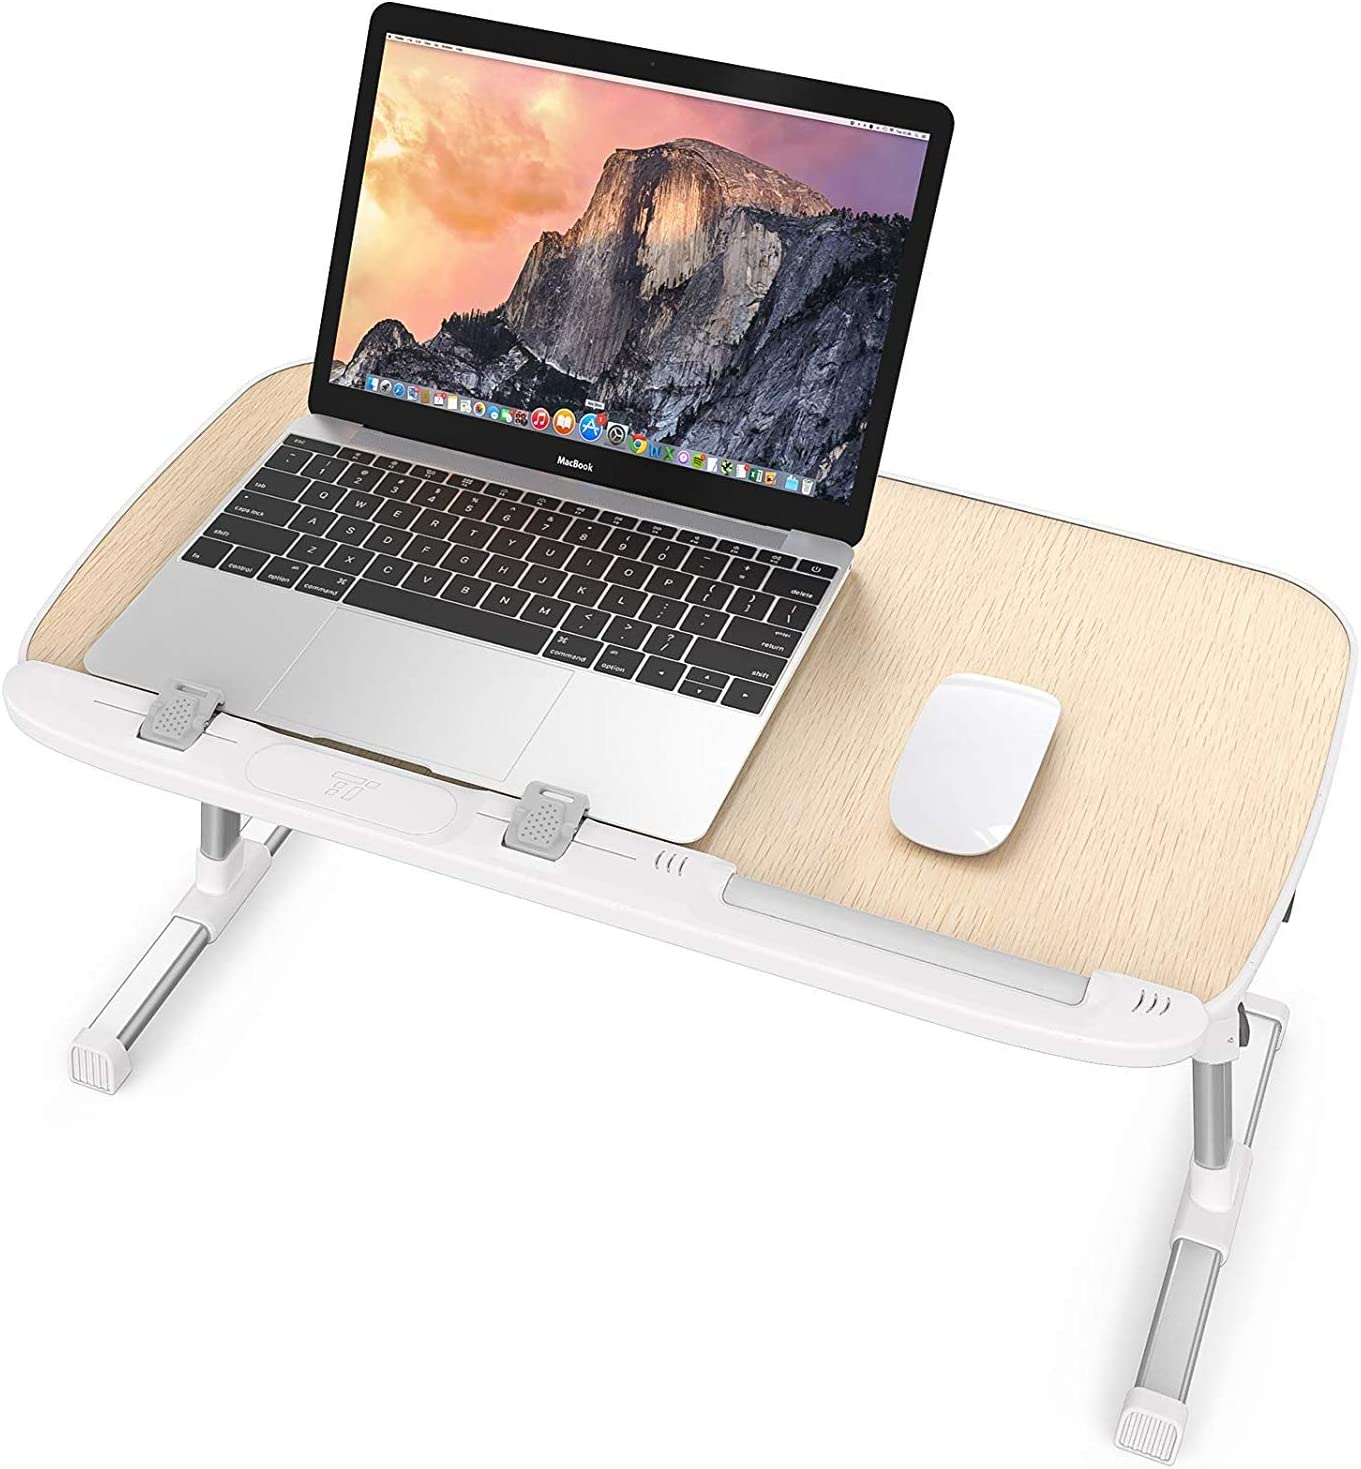 TaoTronics Foldable Laptop Table Stand, Height Adjustable Laptop Desk for Bed and Sofa, Portable Lap Desk, Bed Tray Table, Office Standing Desk Riser (Renewed)